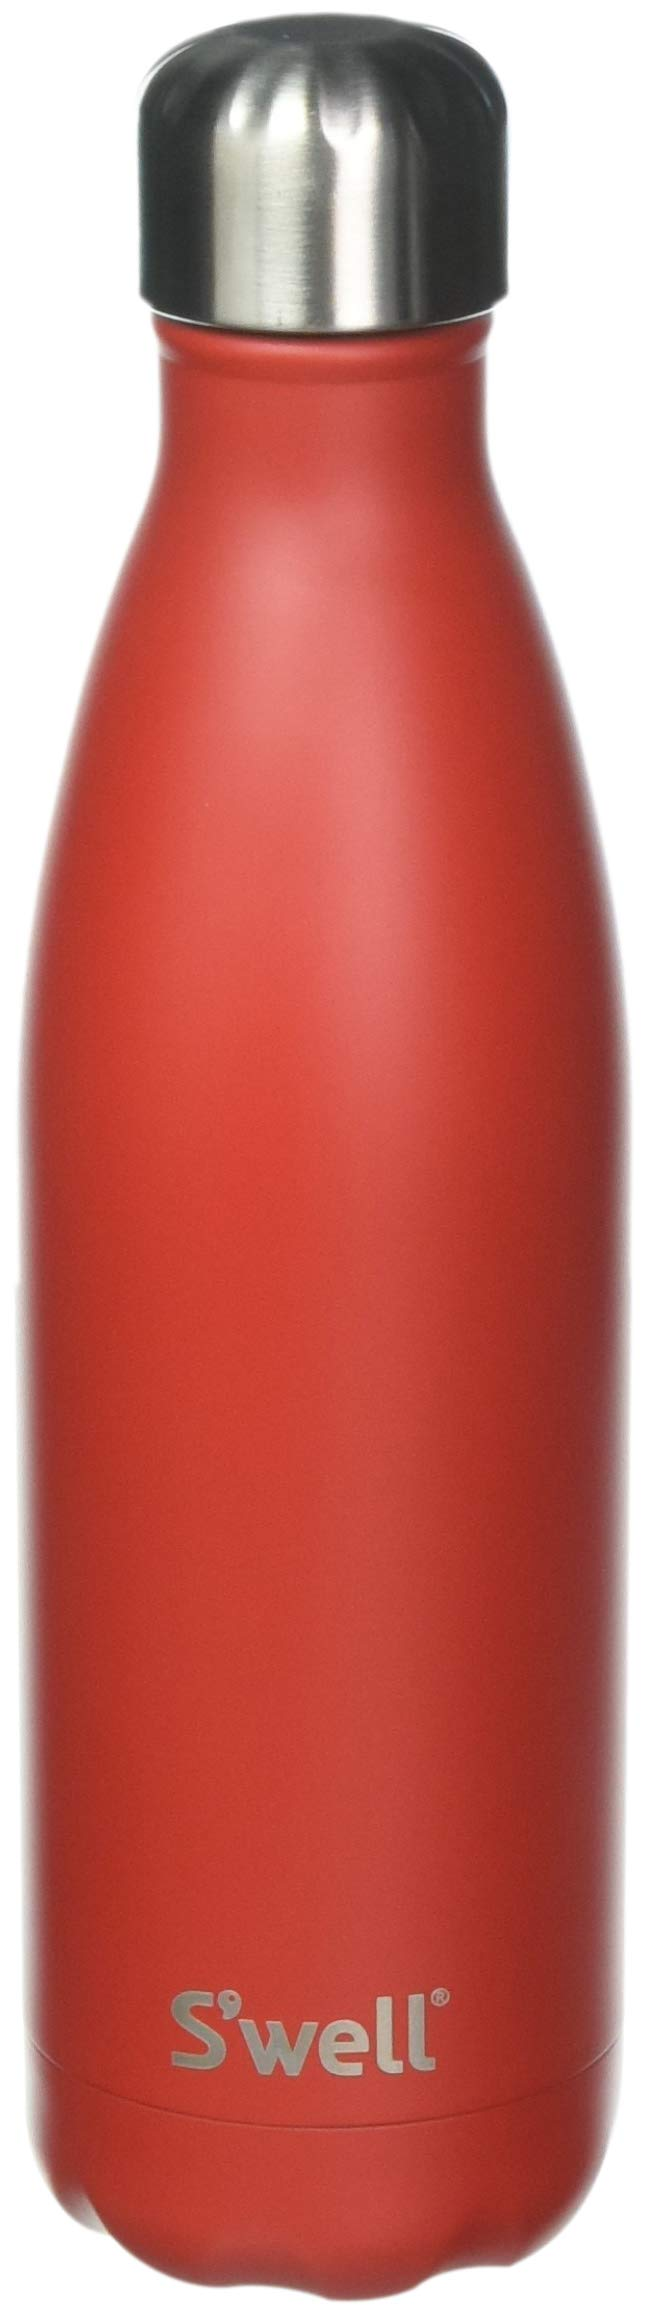 S'well 10017-A18-06660 Stainless Water Bottle, 17 oz, Scarlet